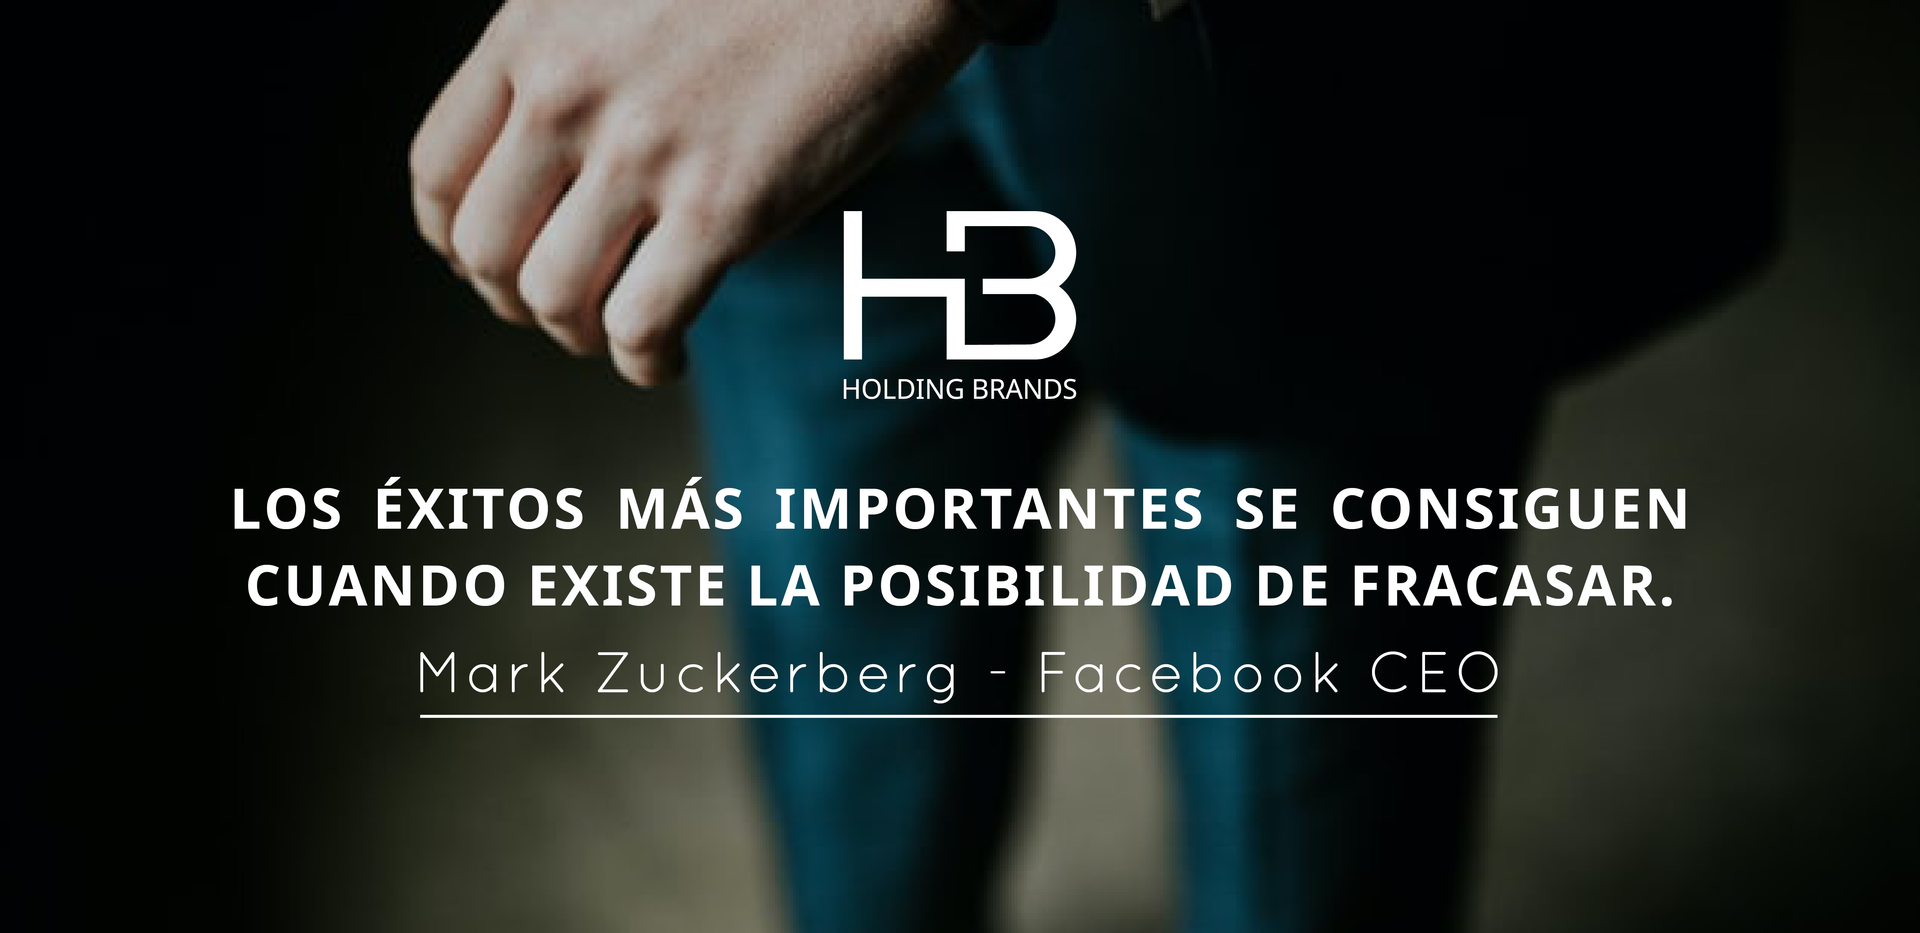 Frases_Ceo_HB_FB.png